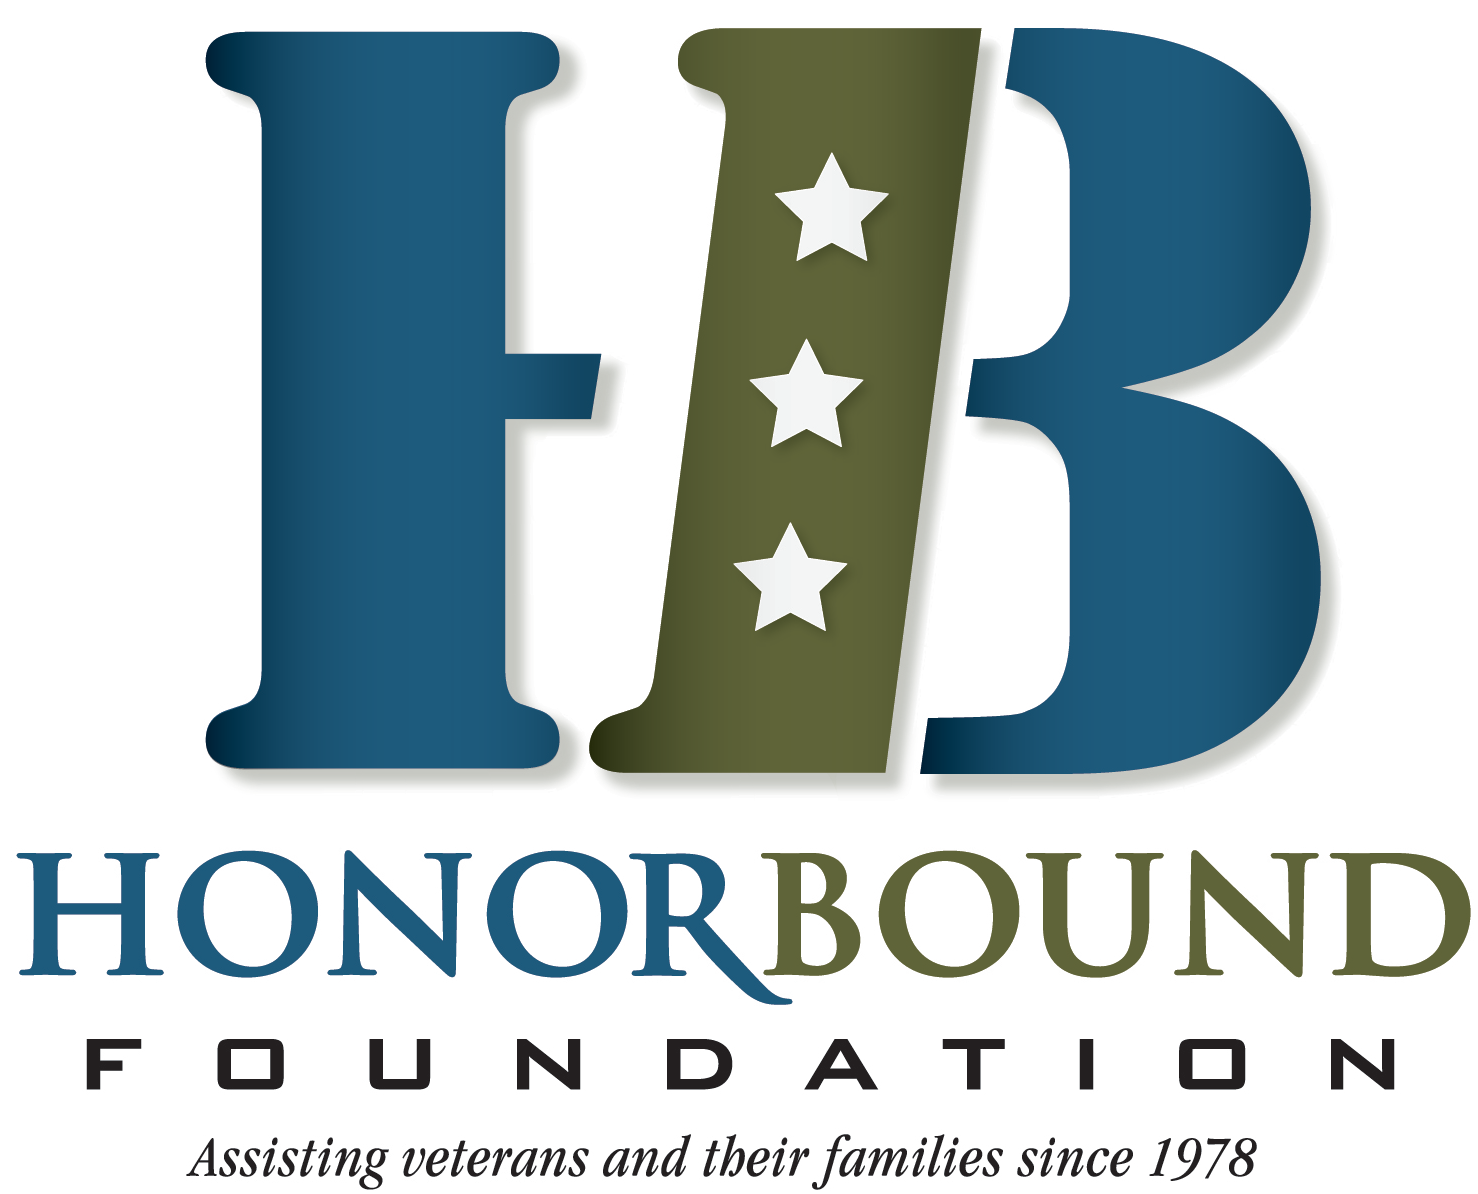 North Dakota Car Donations - HonorBound Foundation - DonatecarUSA.com